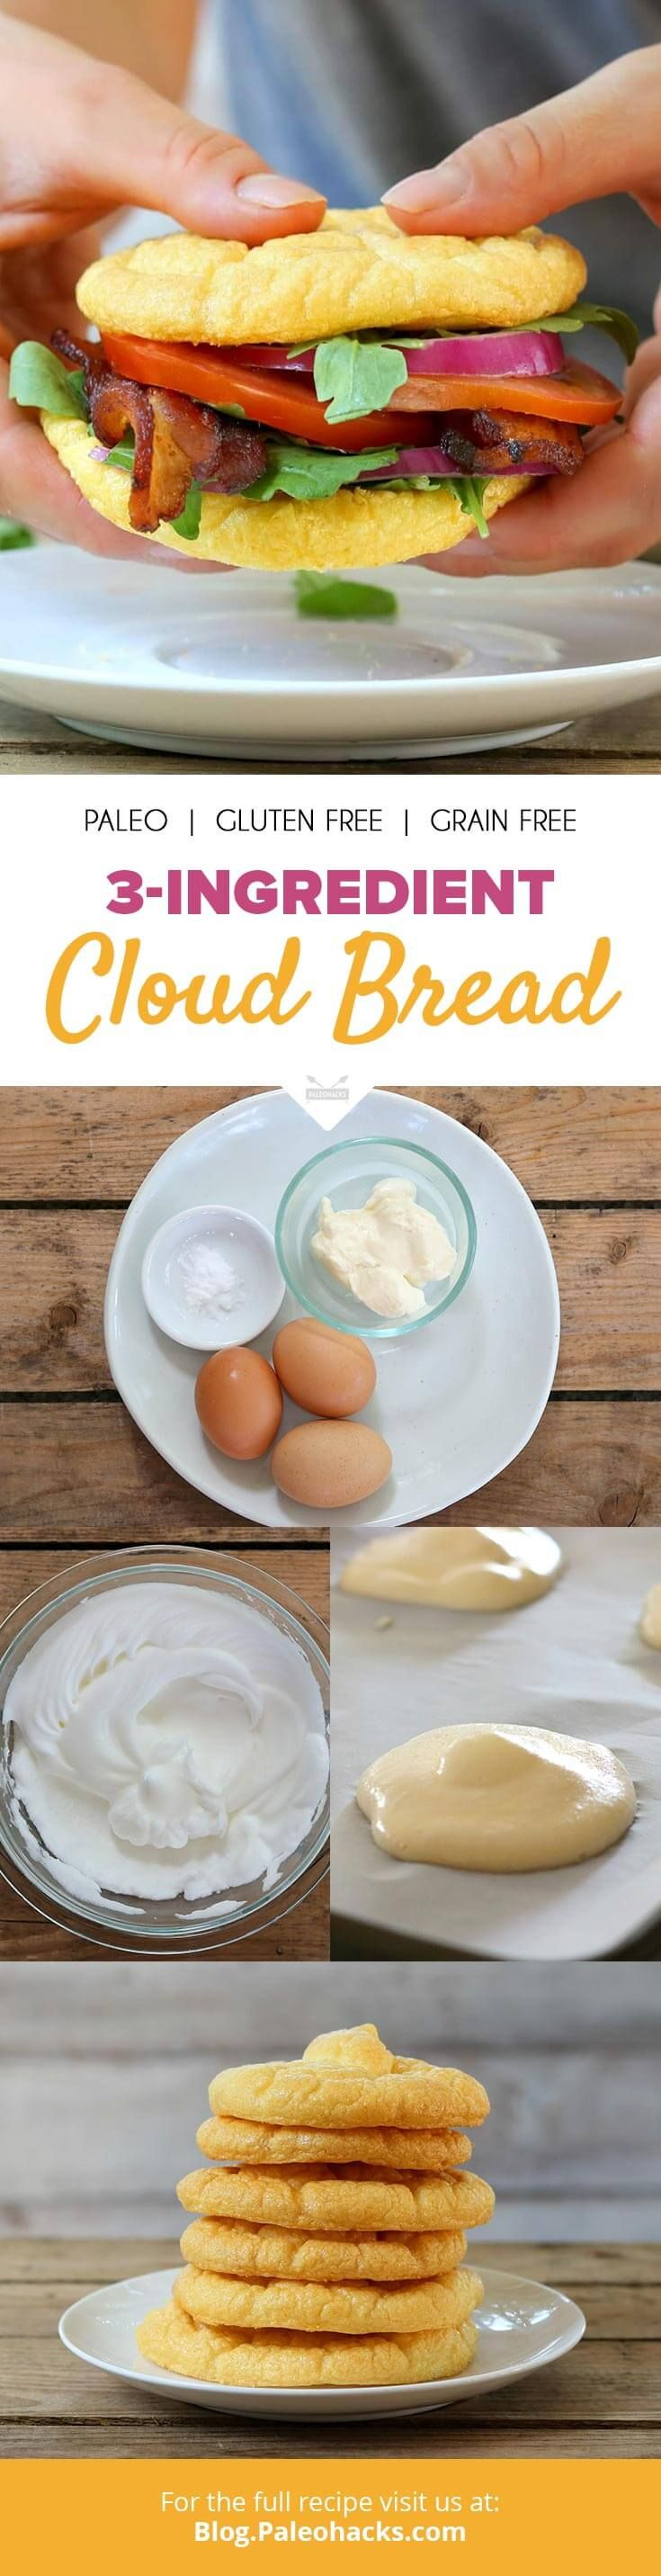 Light and airy, this 3-ingredient cloud breadis easy to make and can be topped with anything from sweet jam to savory cashew cheese. Love Paleo breakfast ideas? Grab your FREE Paleo Breakfast Recipe eBook here: http://blog.paleohacks.com/brtypg/